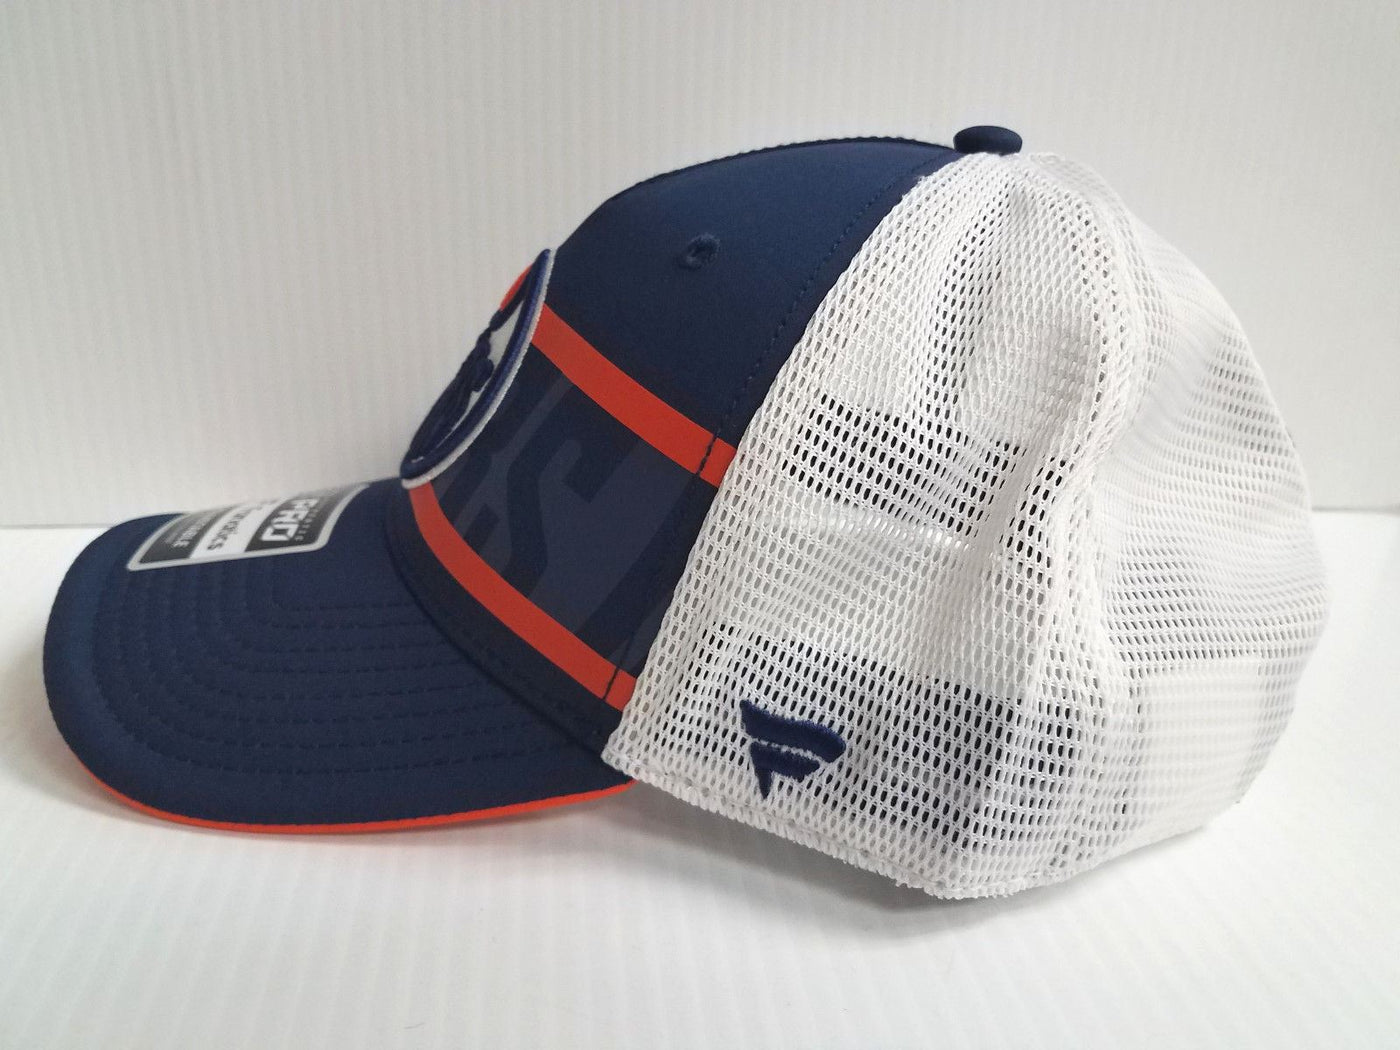 Edmonton Oilers Cap 2018 Authentic Pro Second Season Adjustable Mesh H Sports City Hats